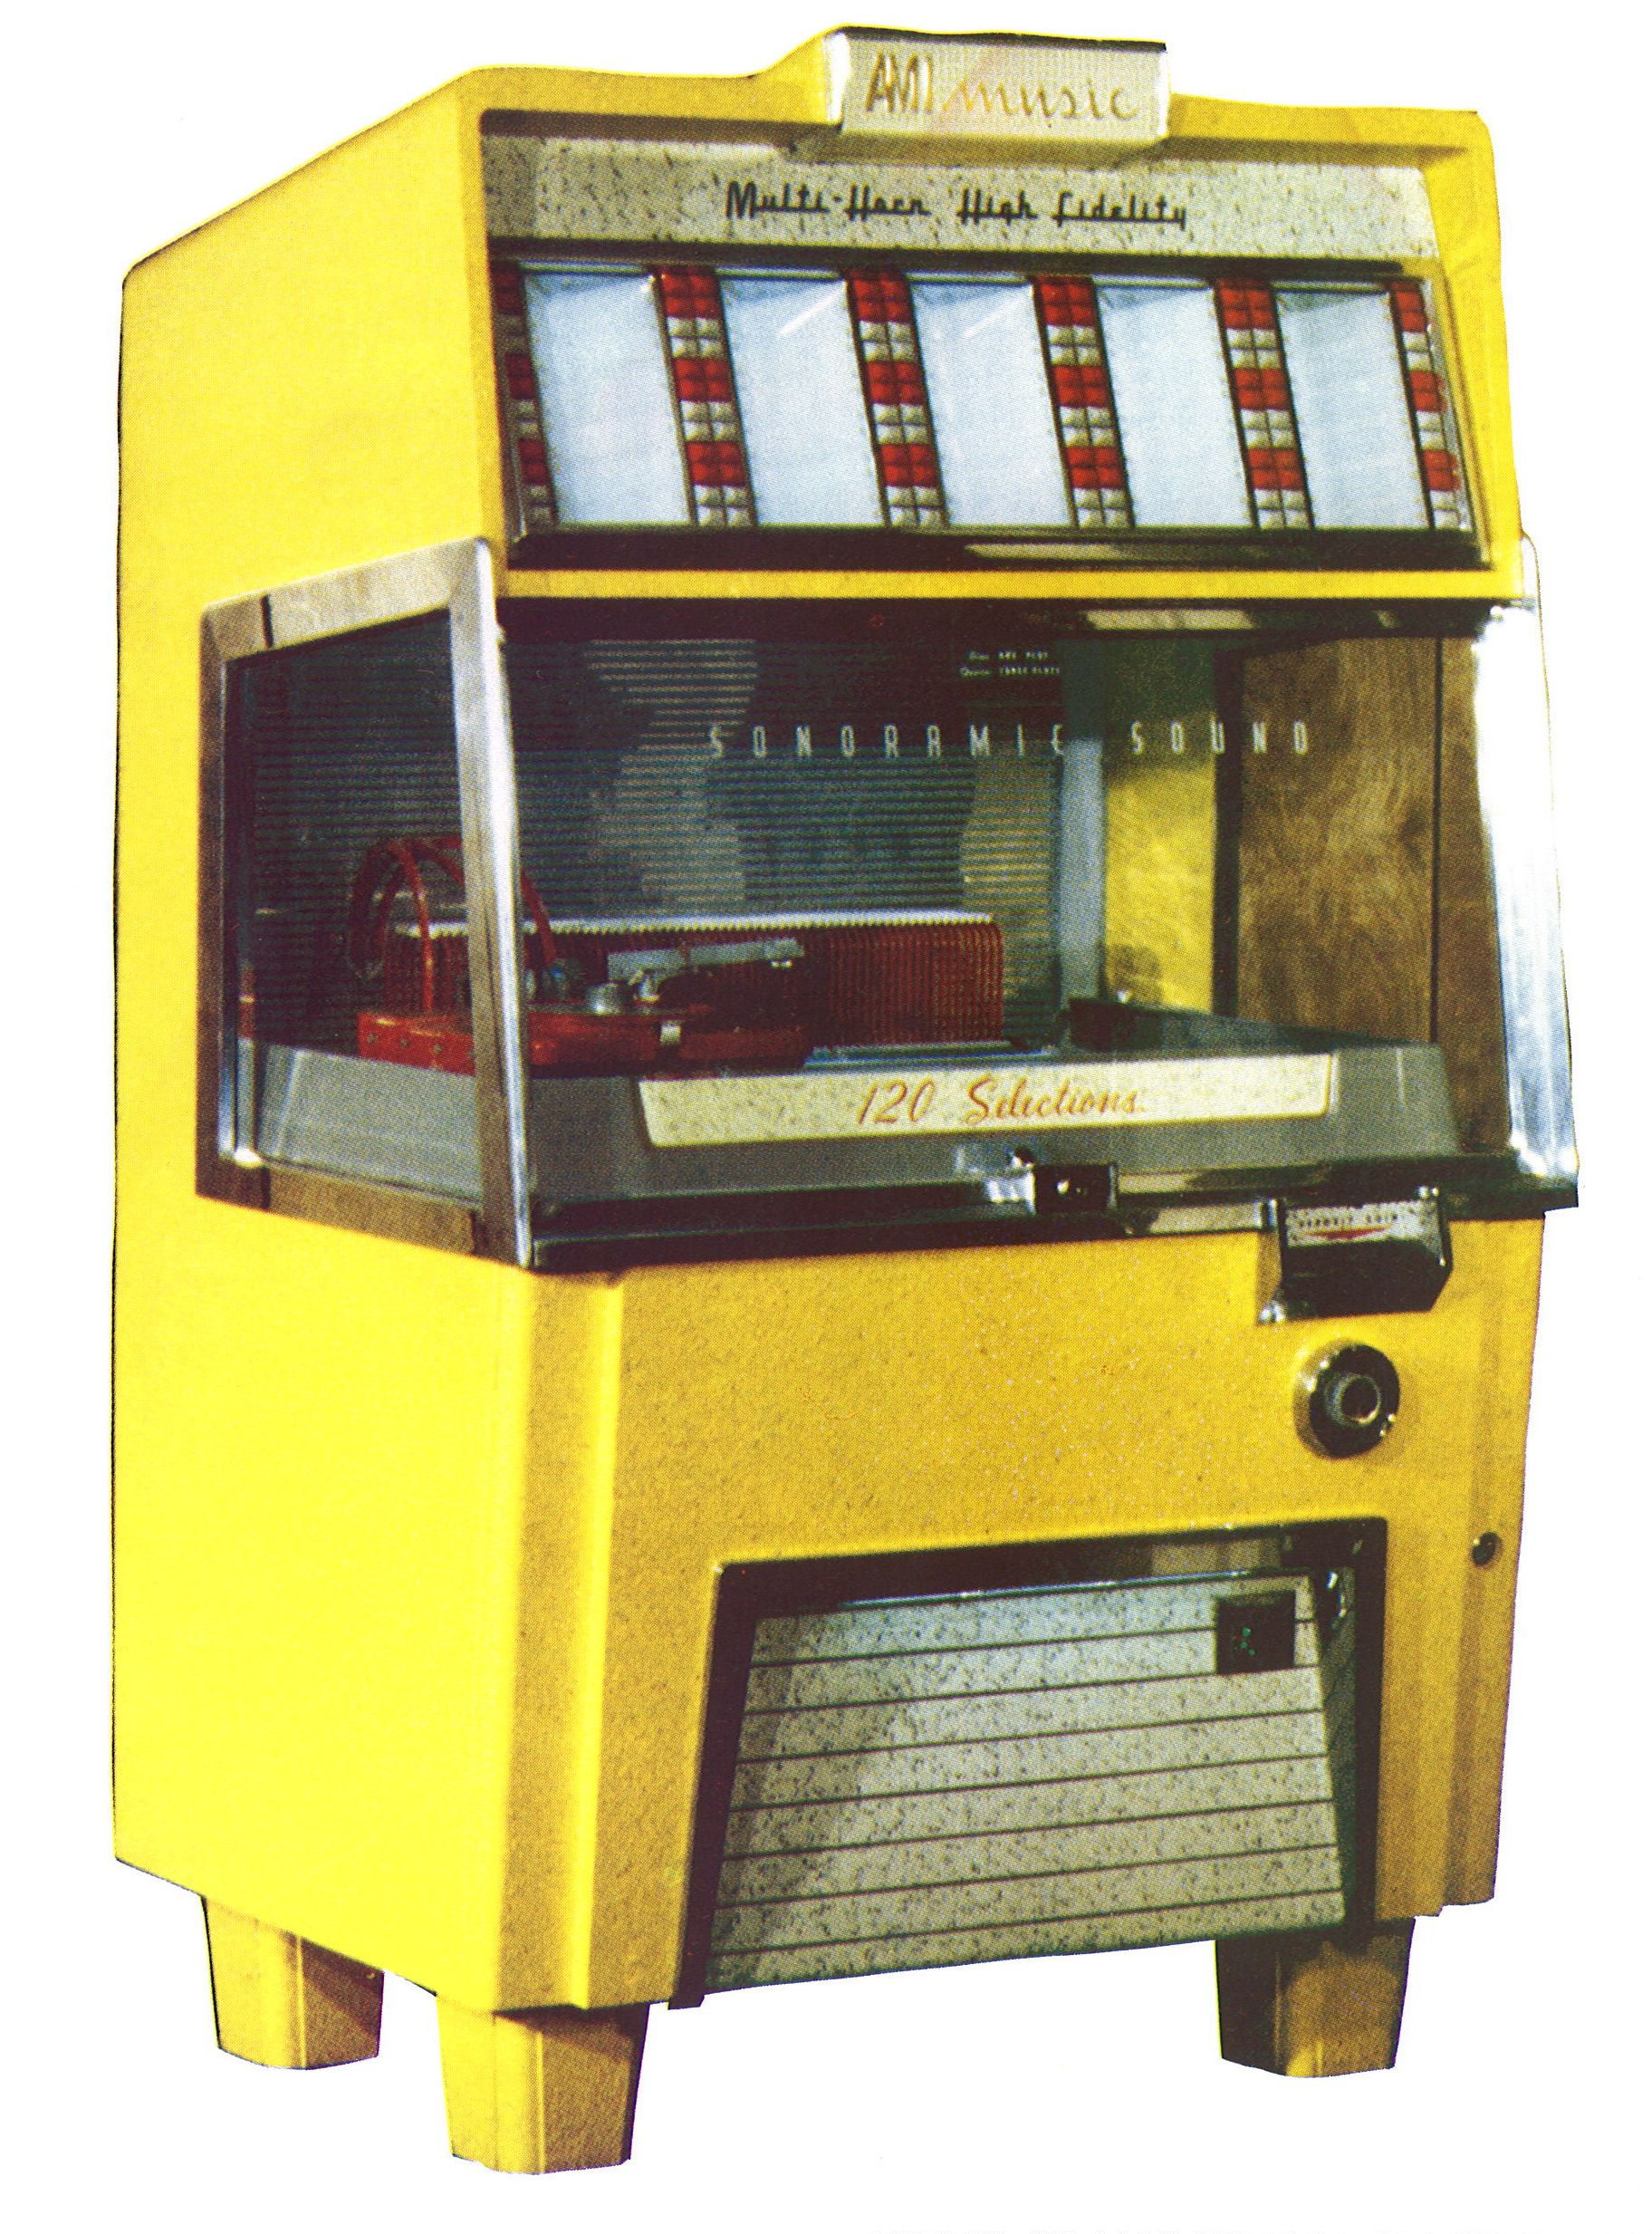 1954, AMI's Model F-120: Available in the following colors- charcoal, yellow, red, blue, brown, coral, and green [Jukebox Collector]